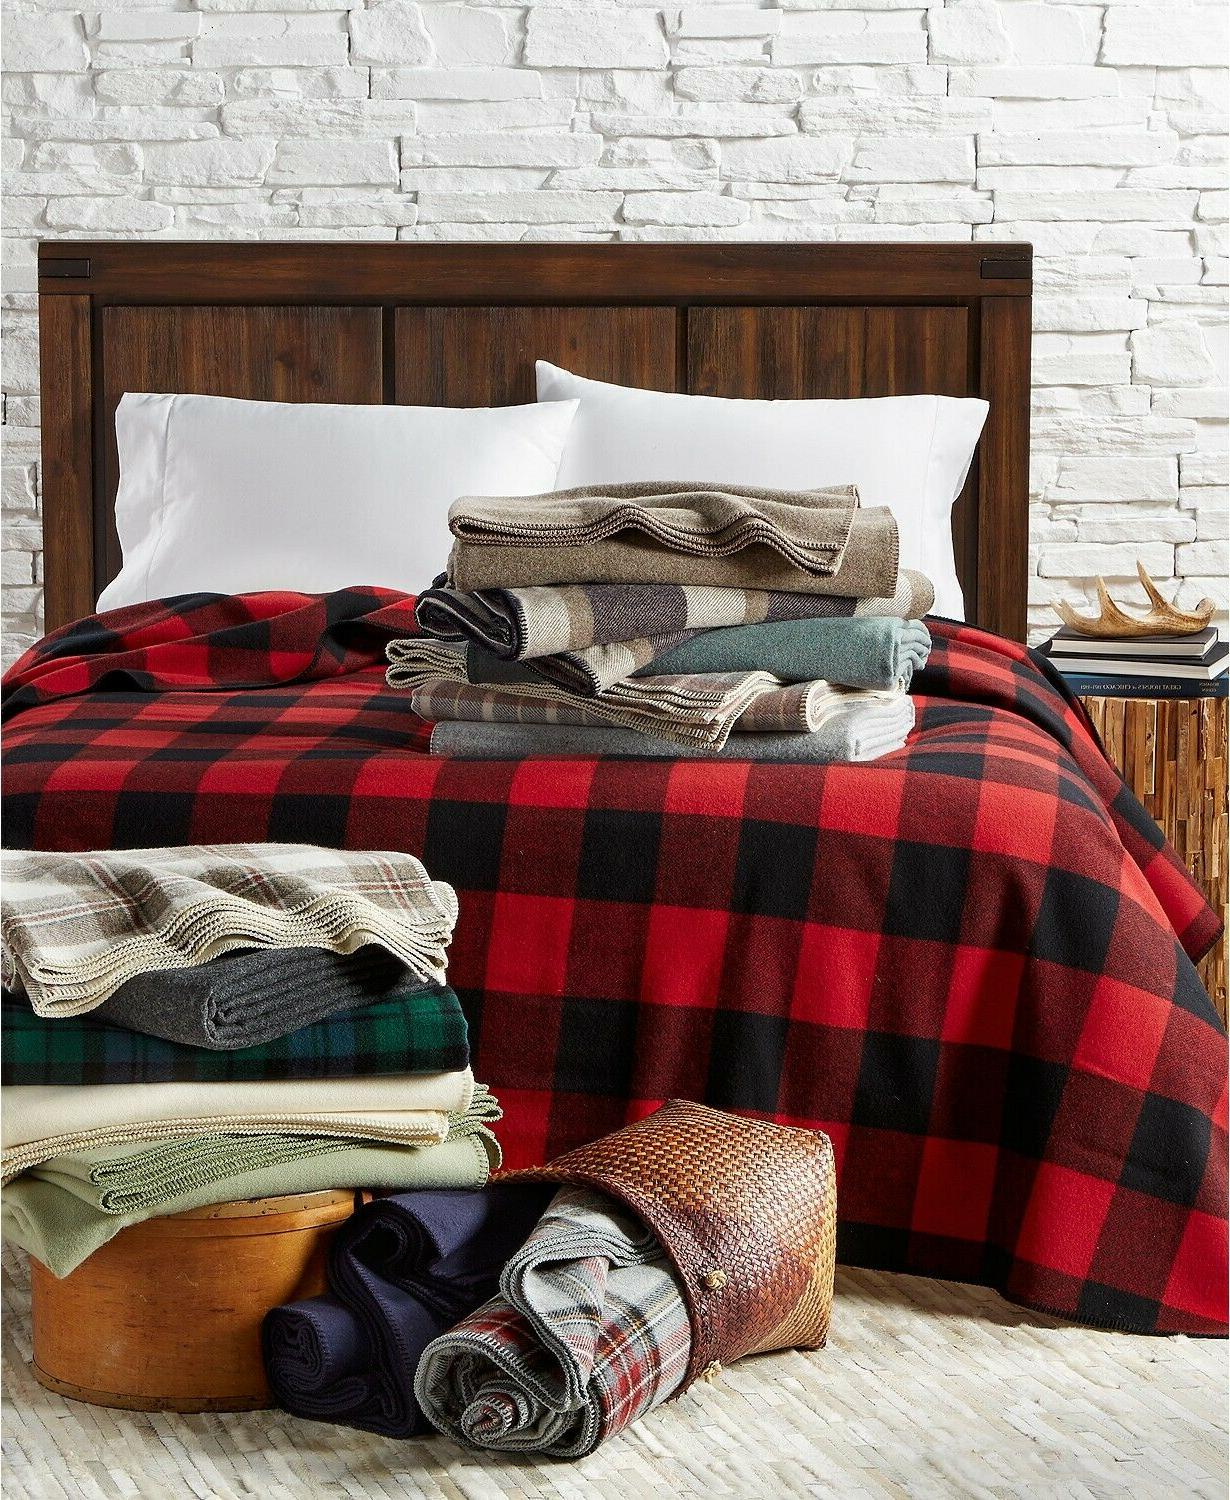 Pendleton King Eco-Wise Washable Wool Blanket In Red Plaid $